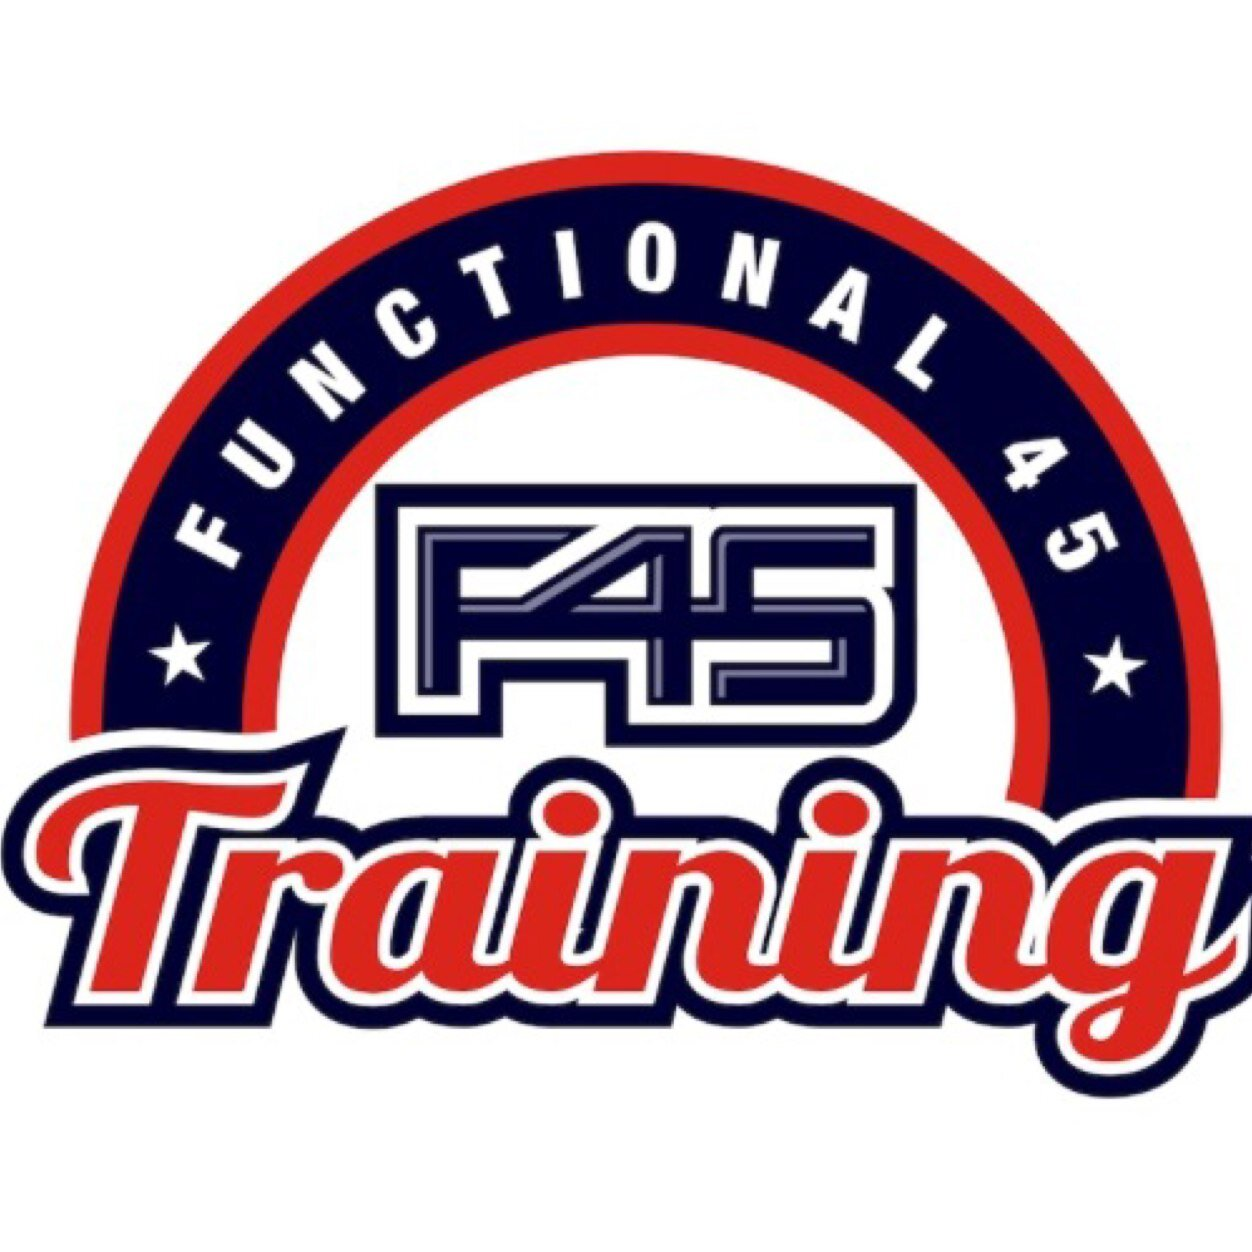 Functional Interval Training Franchise  (Mornington Peninsula) FTR1393